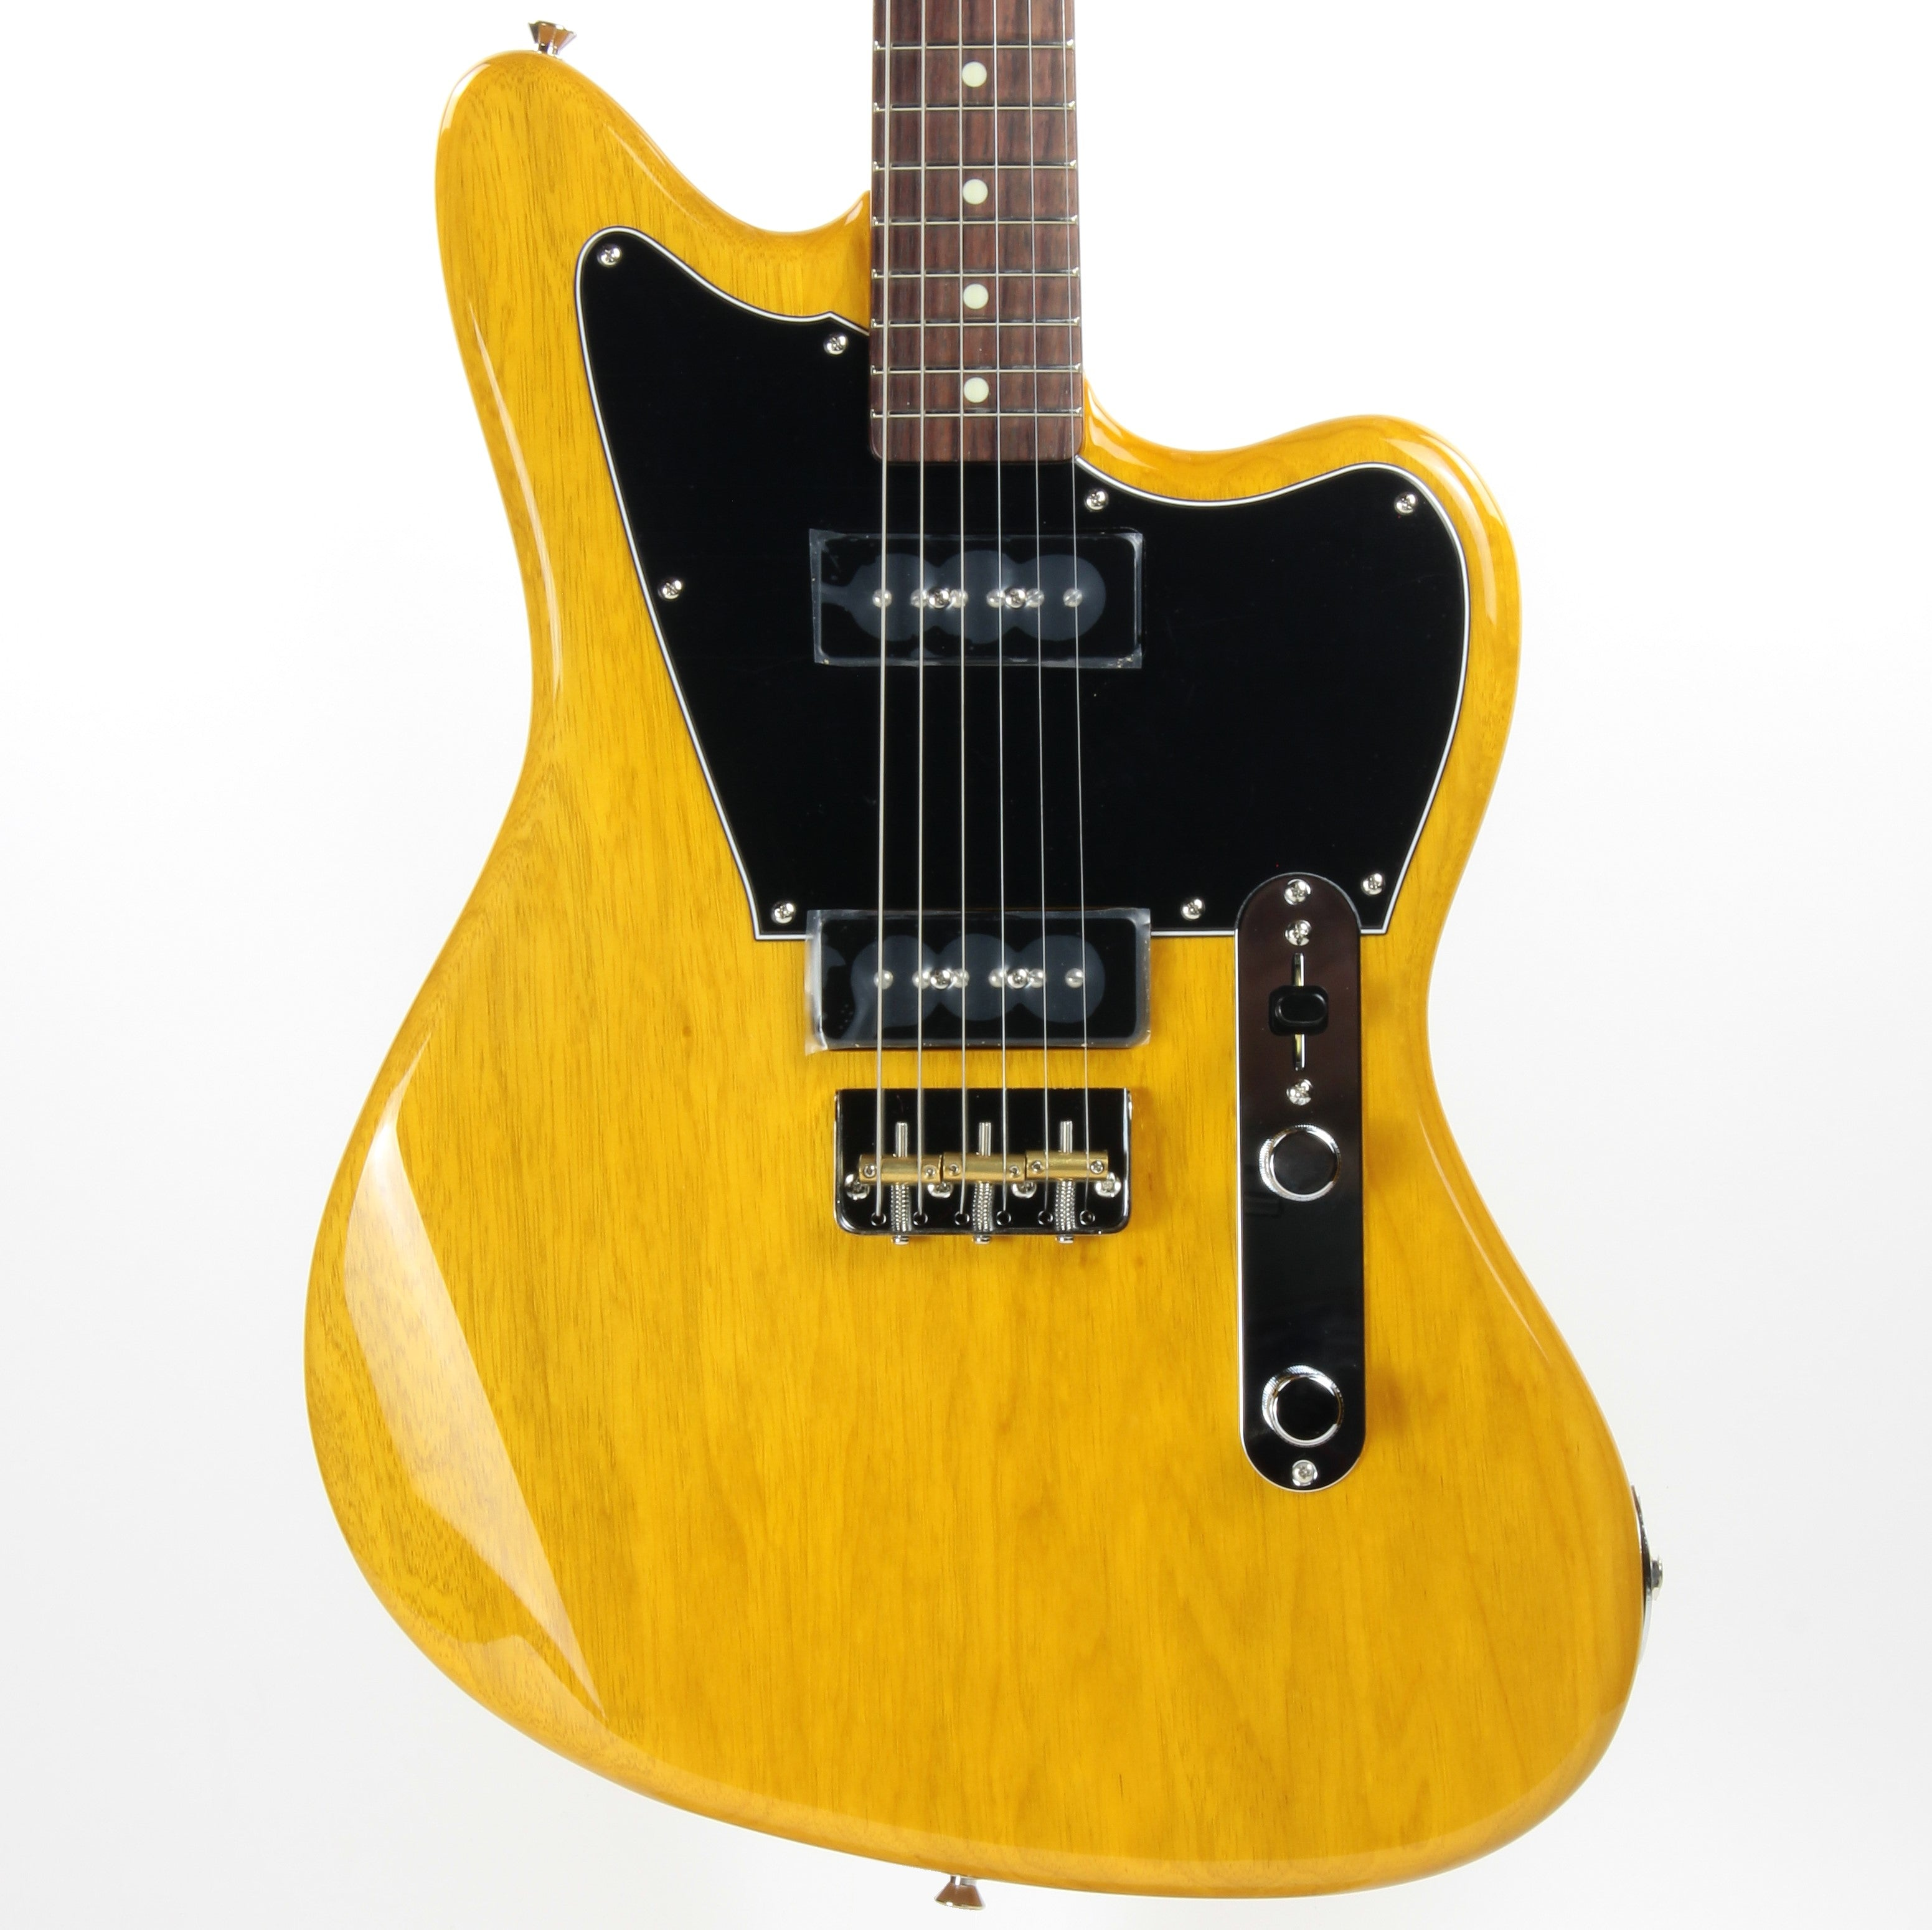 2020 Fender Limited Edition Made in Japan Offset KORINA Telecaster MIJ - Natural w/ Rosewood